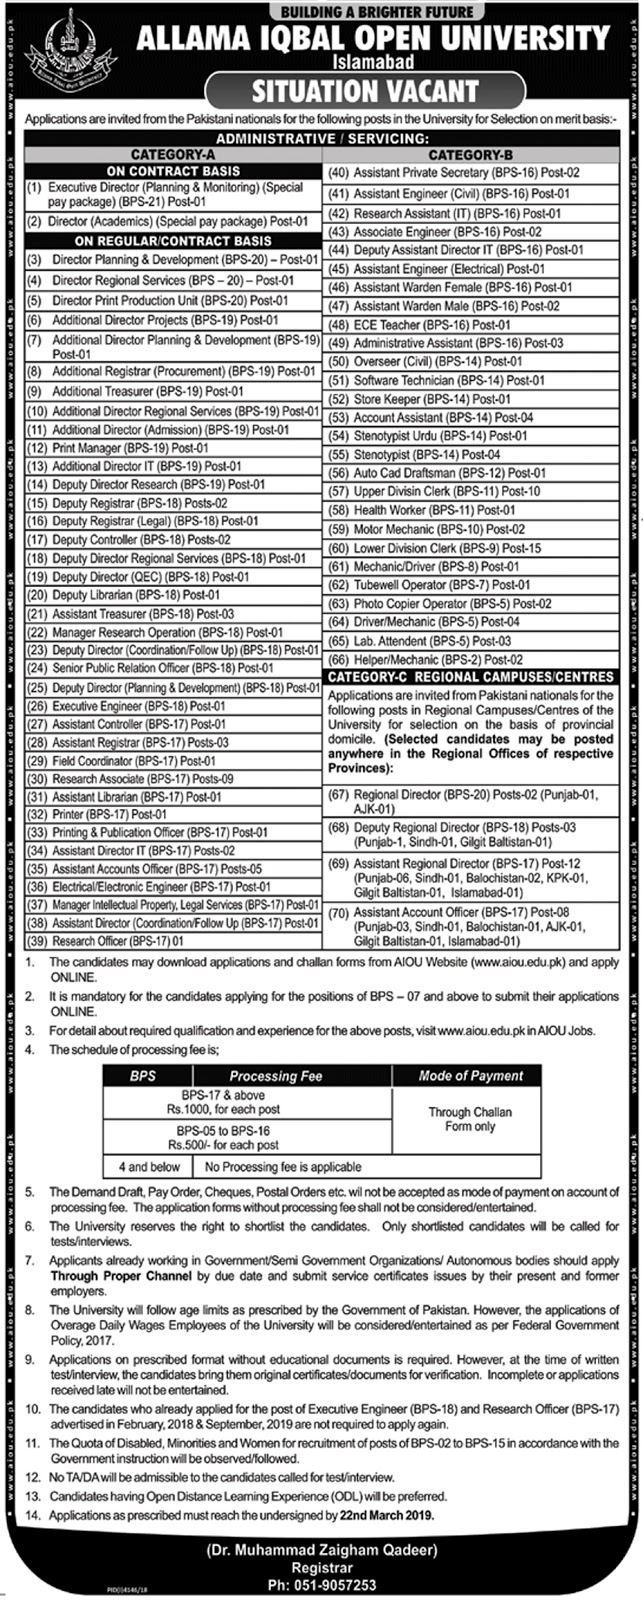 AIOU Jobs March 2019 | Allama Iqbal Open University Jobs 2019 | AIOU jobs Advertisement